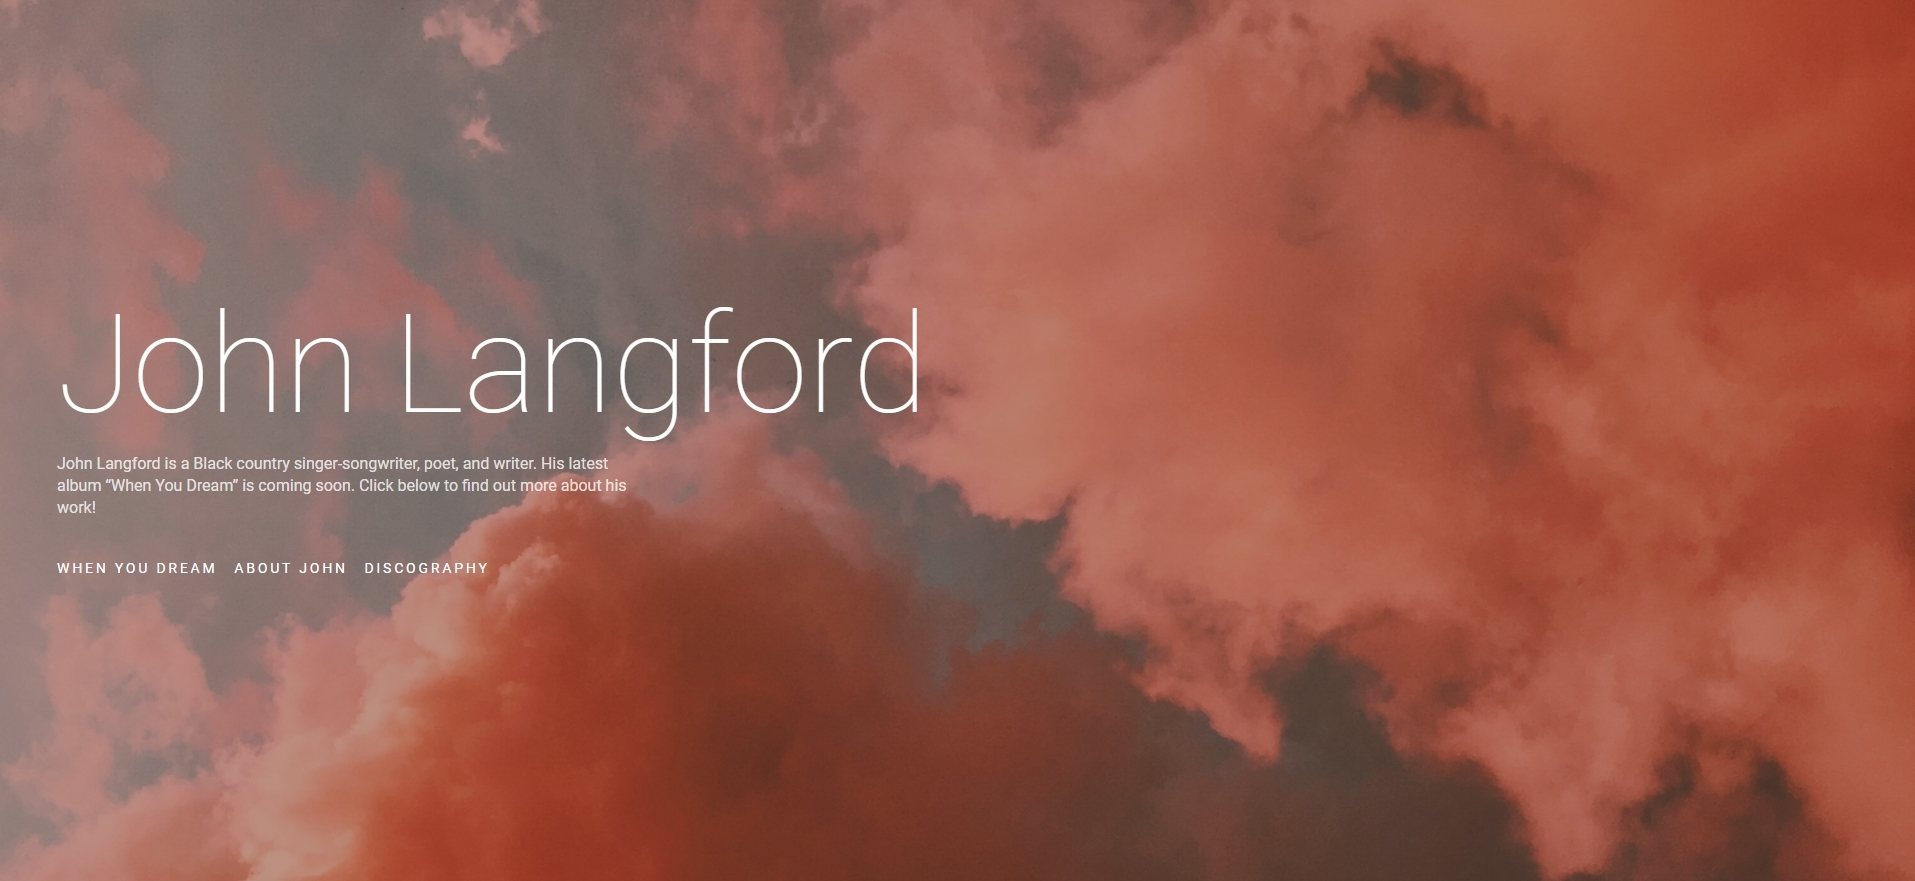 John Langford - Singer-songwriter portfolio and presskit website